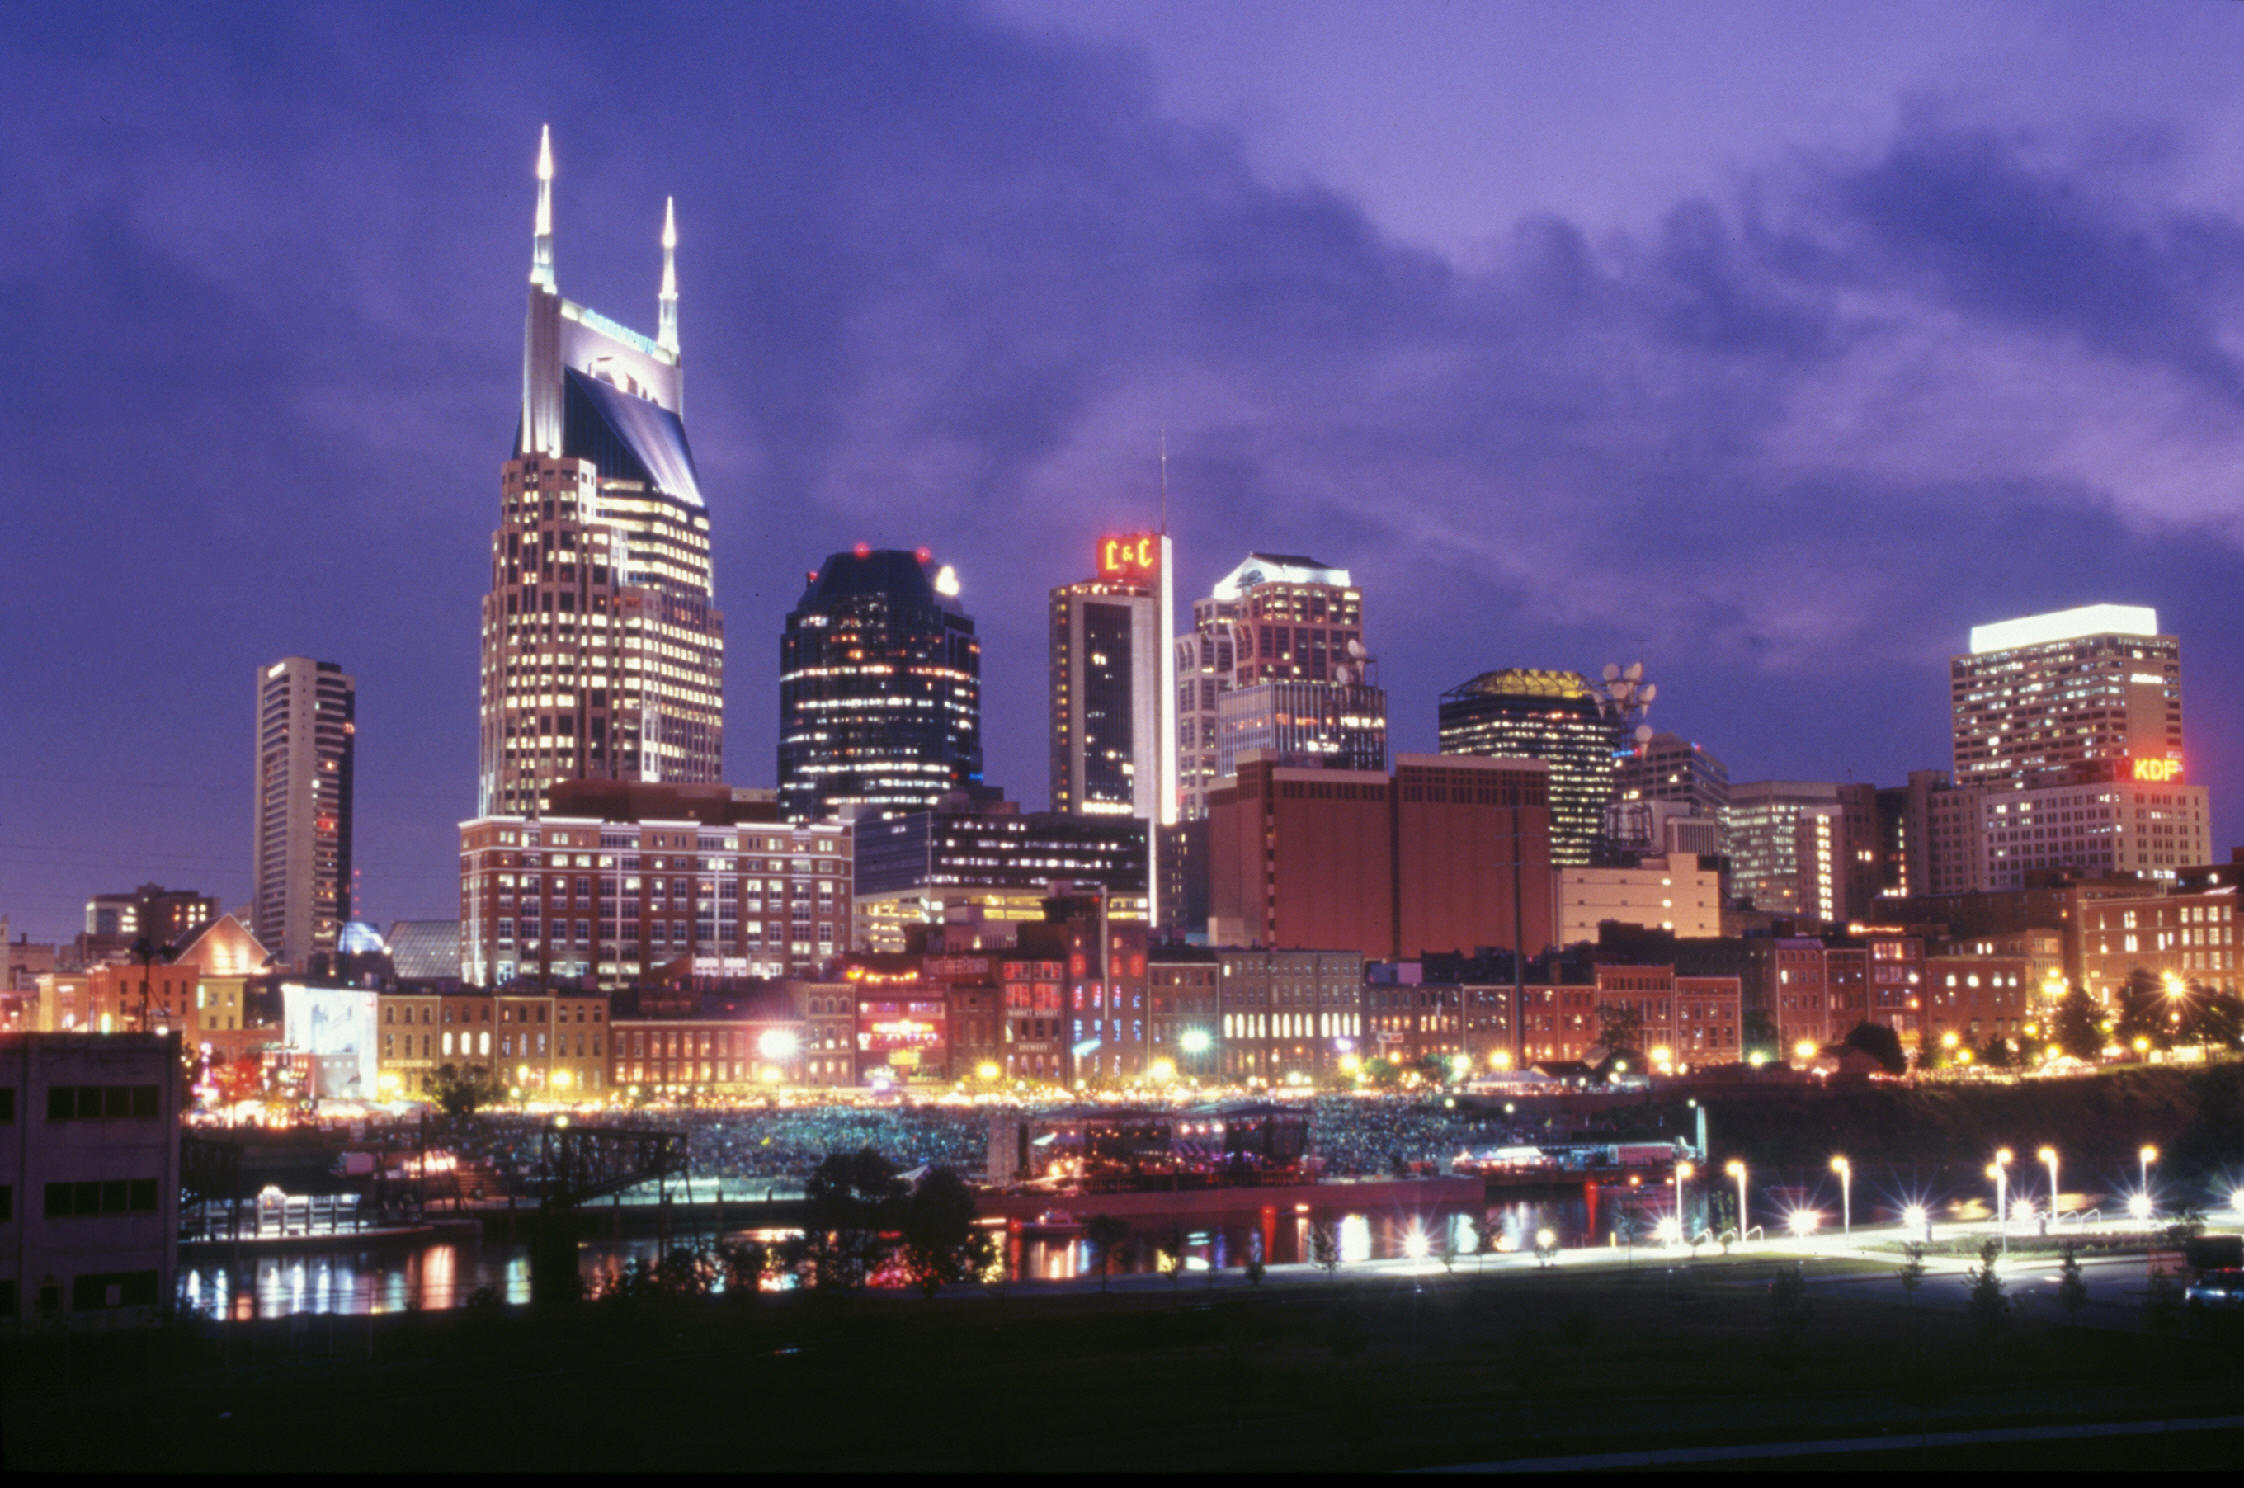 <a href='http://www.ticketsreview.com/city/nashville_tn-tickets/'>Nashville tickets</a>